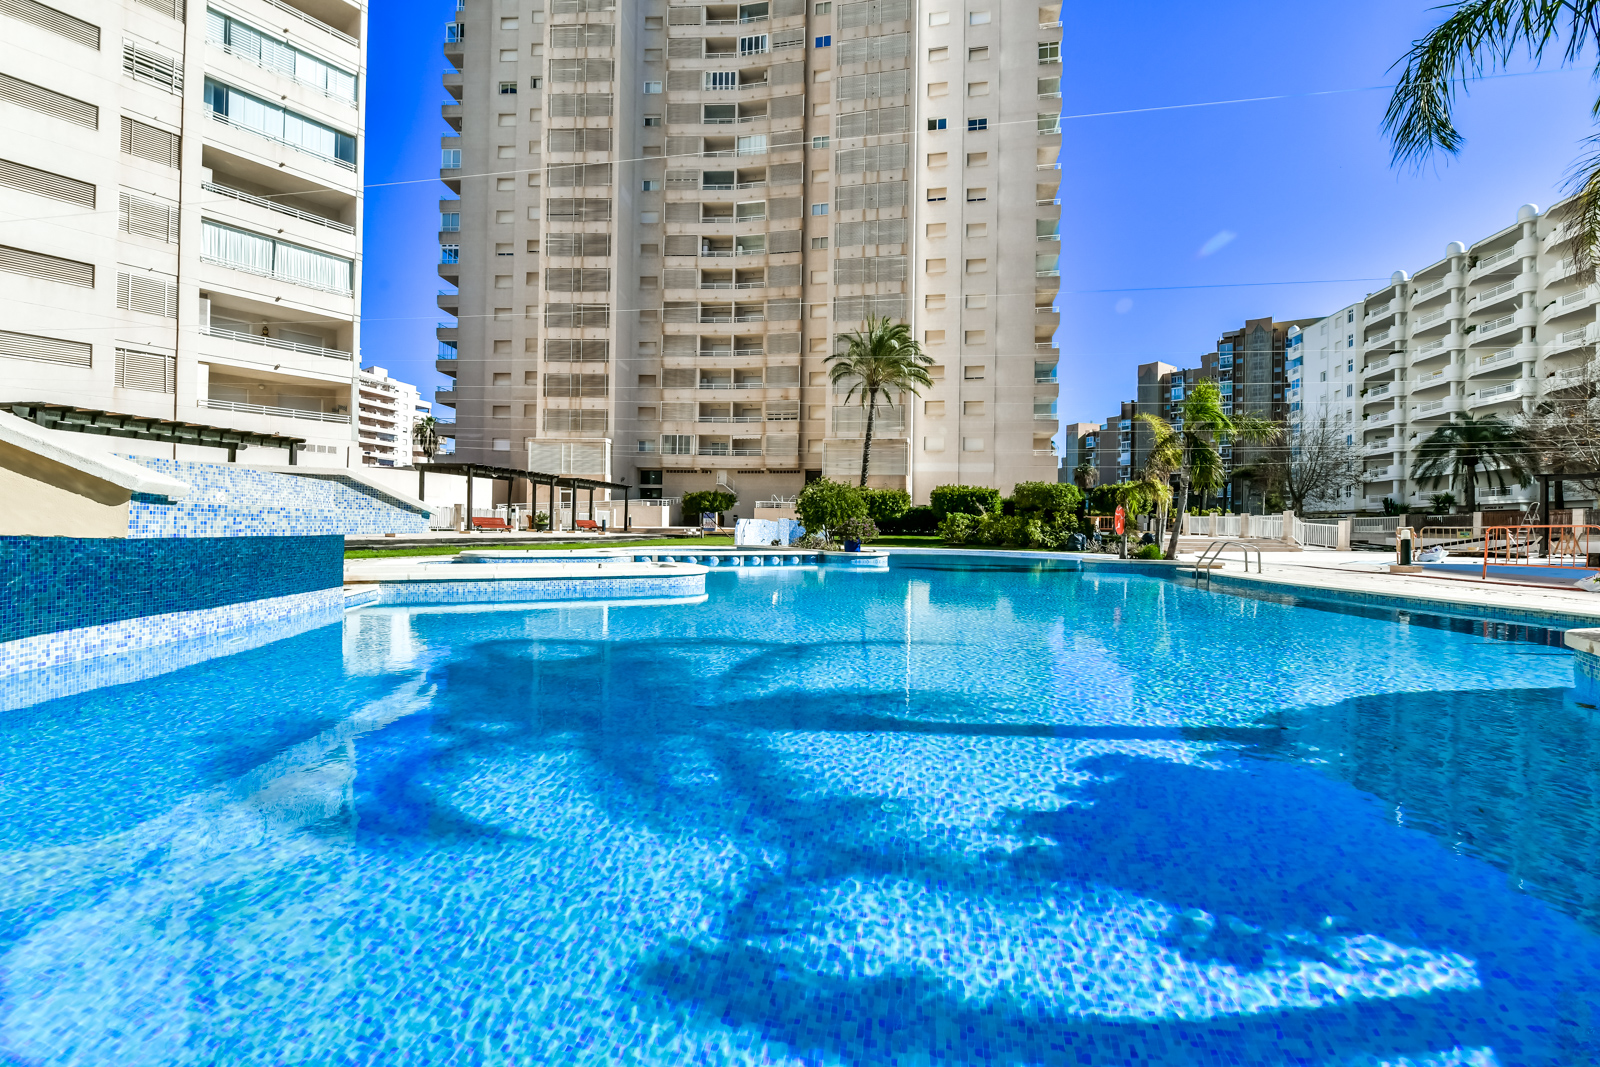 Apartamento Apolo XVII 31, Apartment  with communal pool in Calpe, on the Costa Blanca, Spain for 4 persons.....